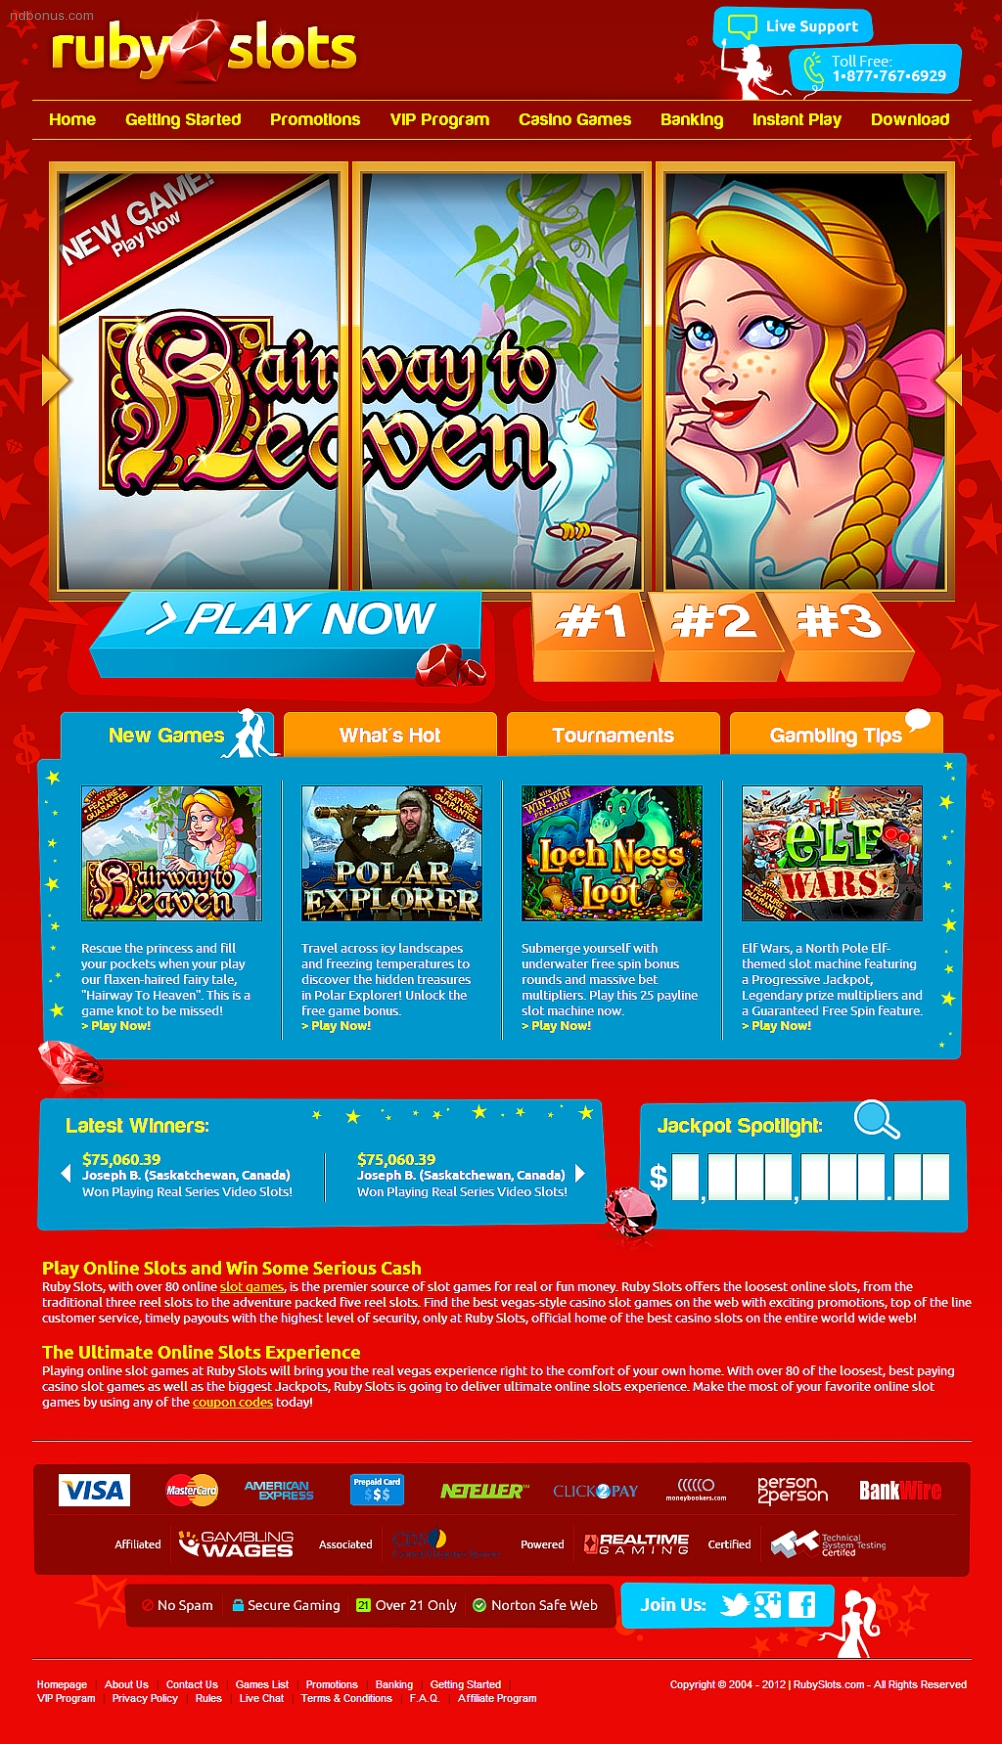 Twin Casino Codes - 25866